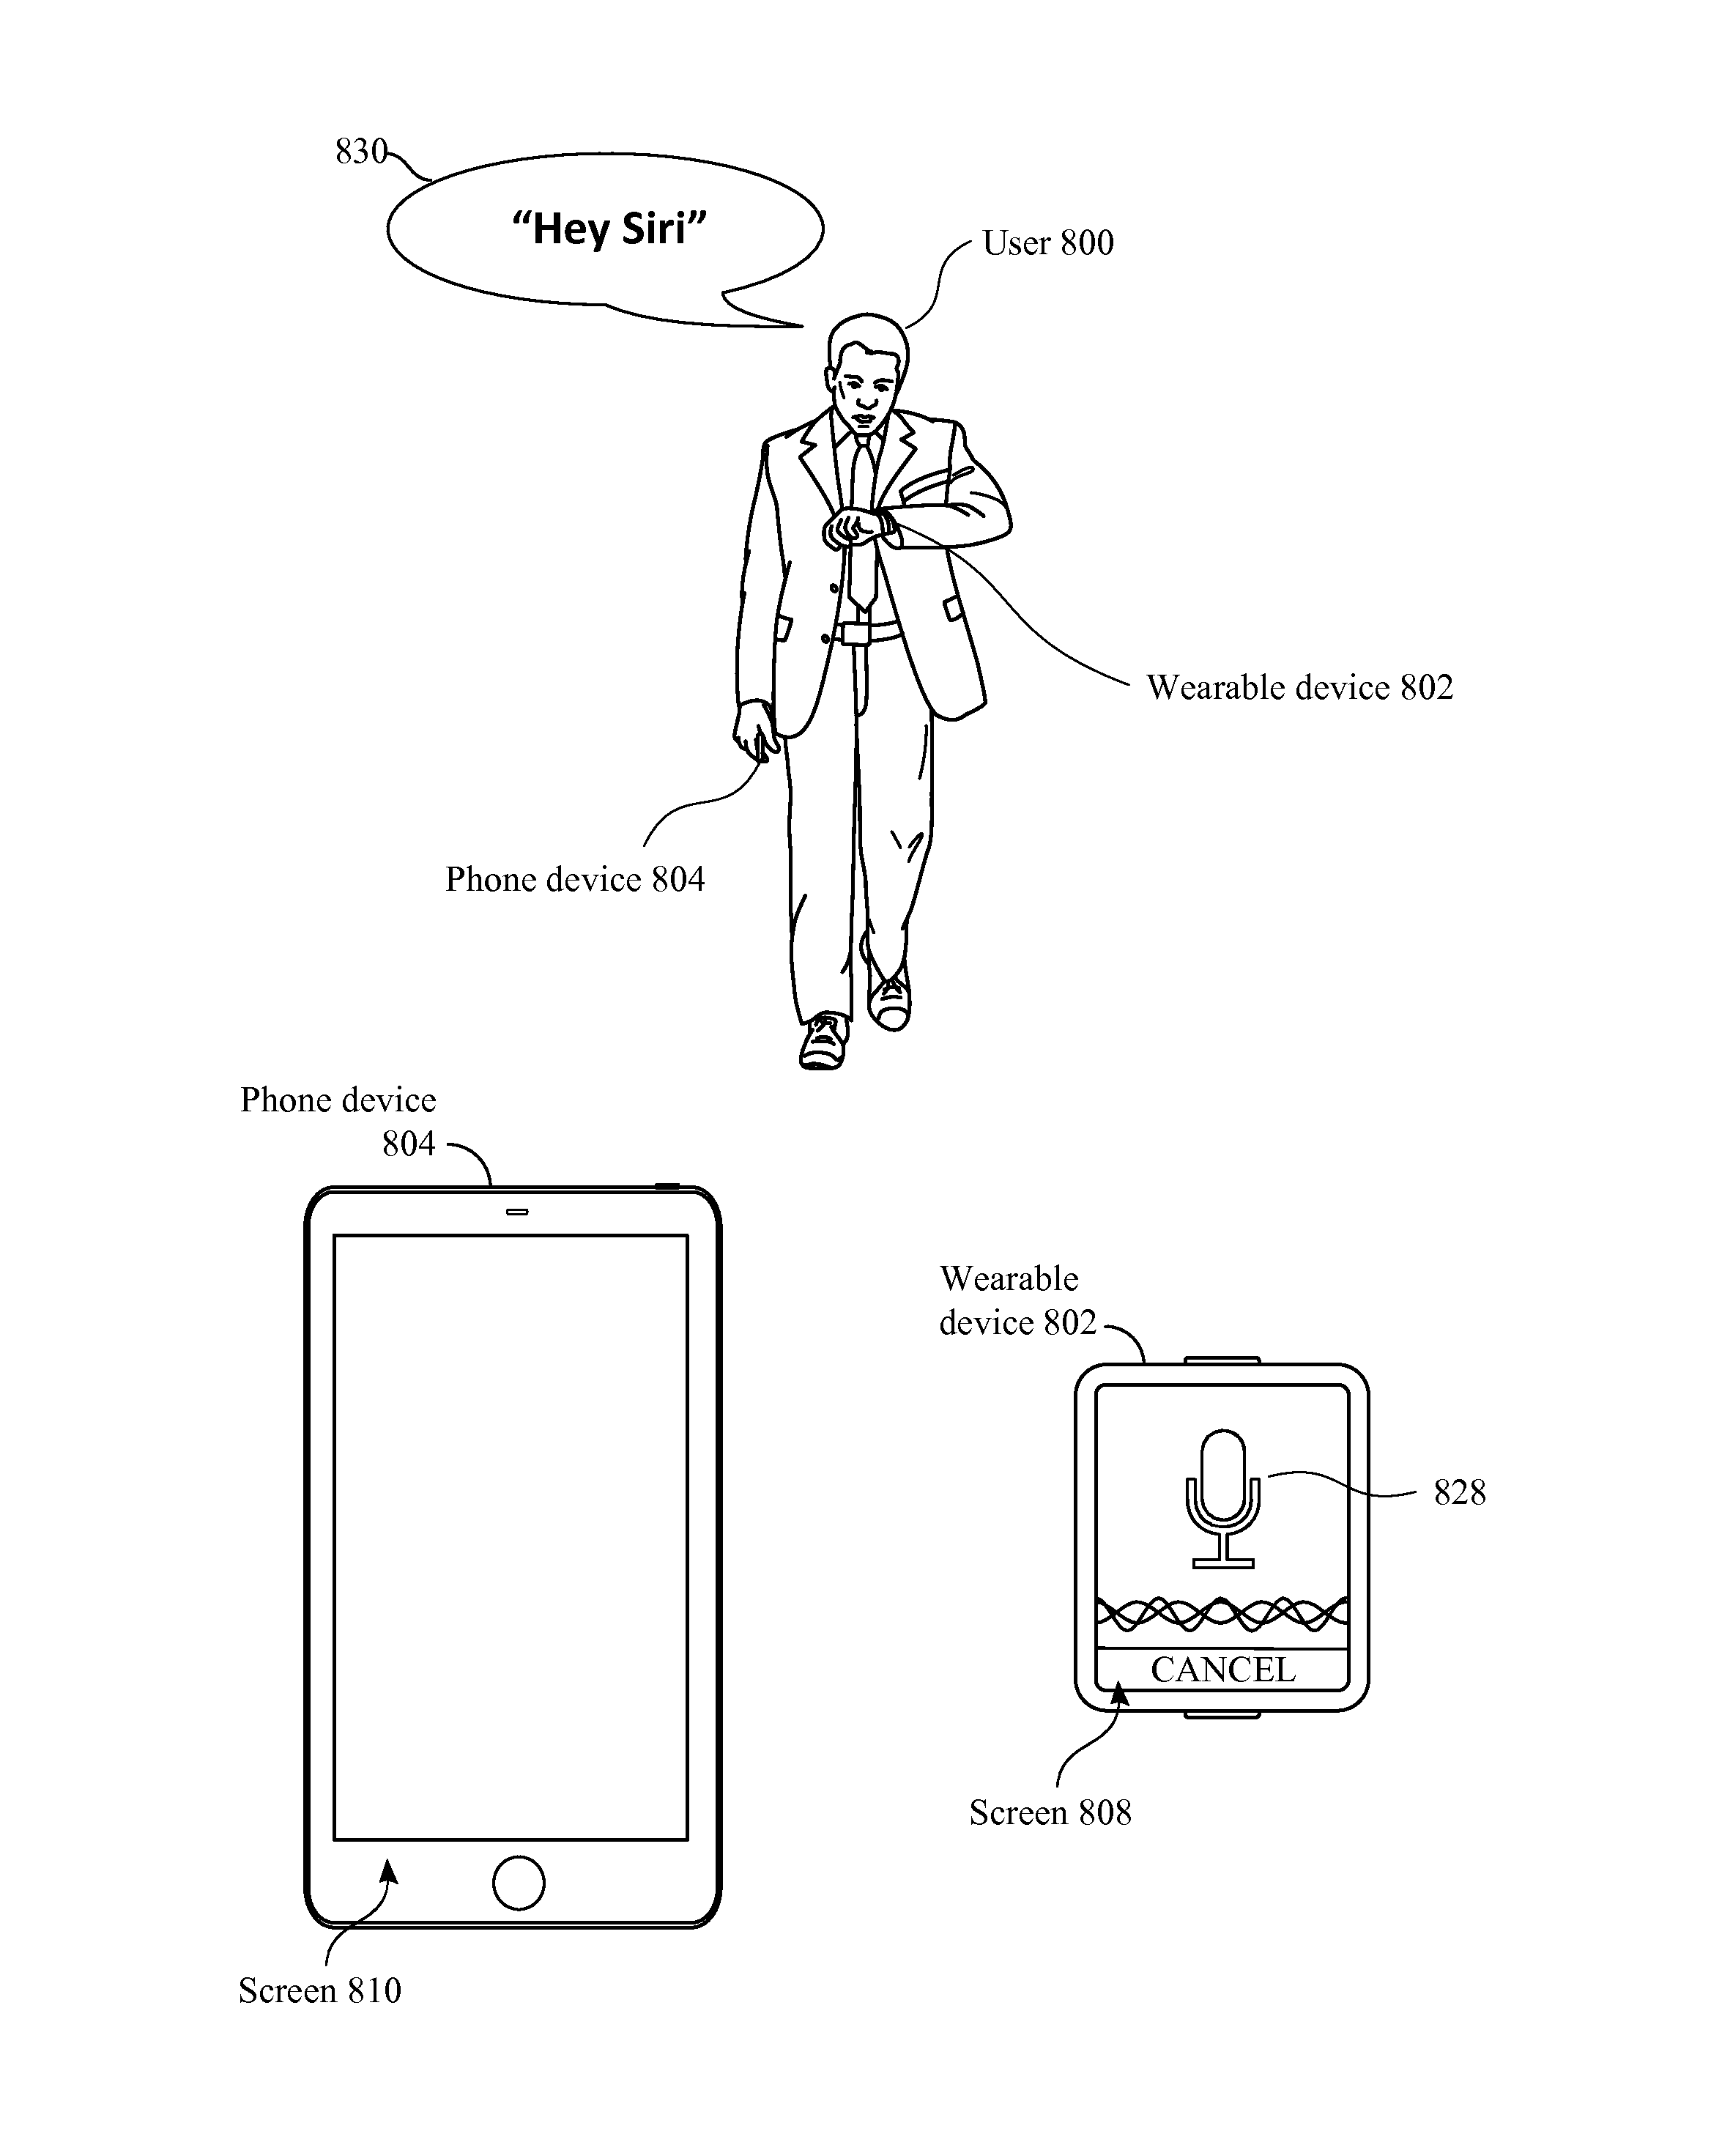 Us20160260431a1 peting devices responding to voice triggers patents